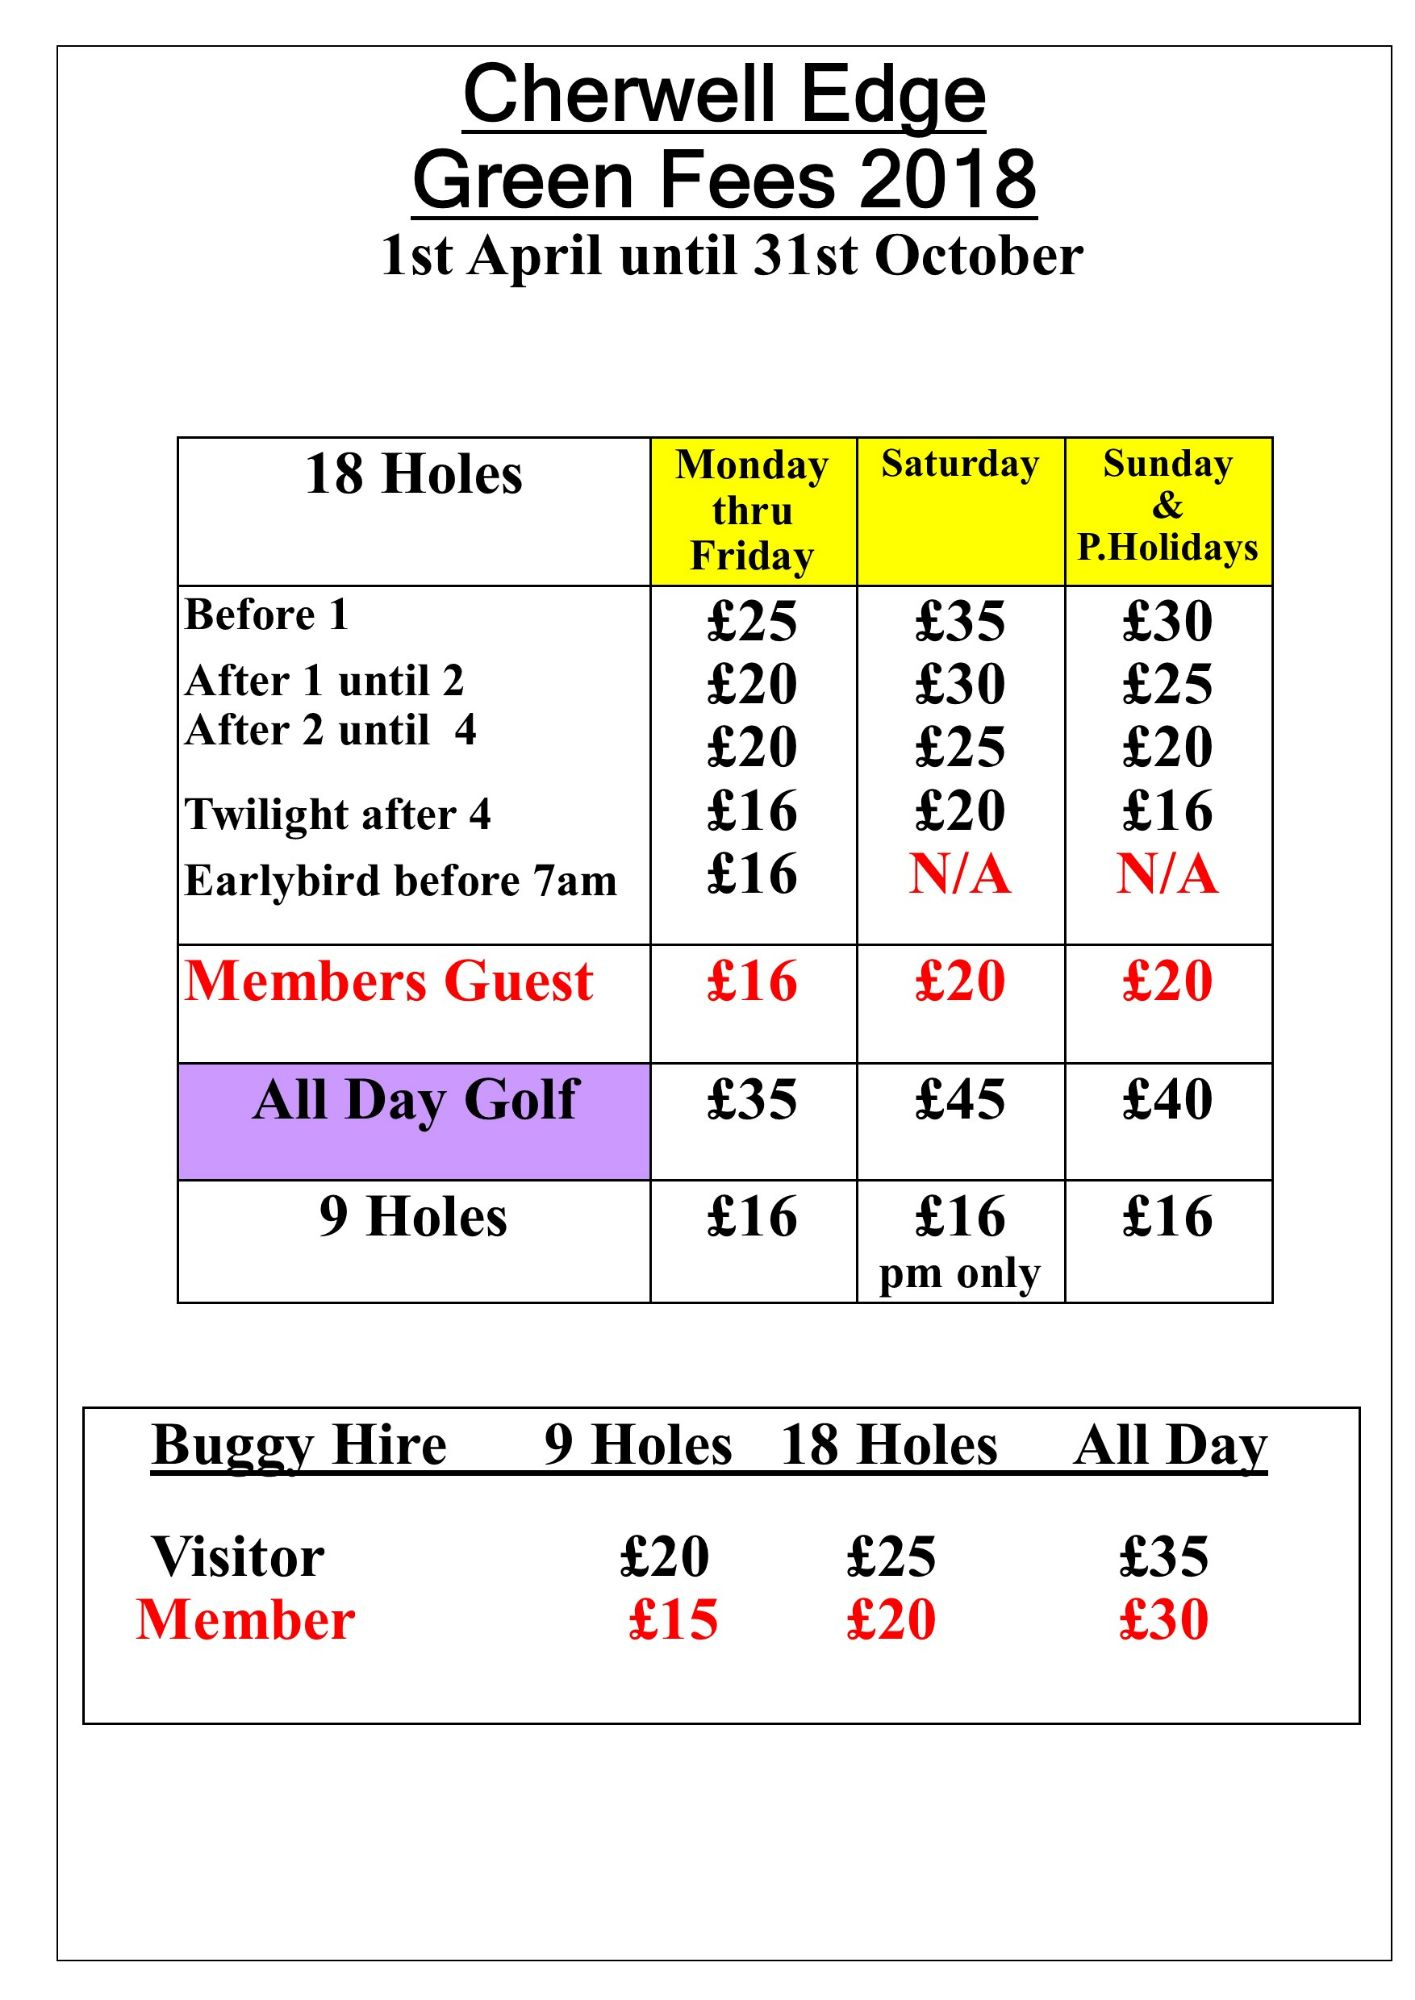 Cherwell Green Fees Summer 2018